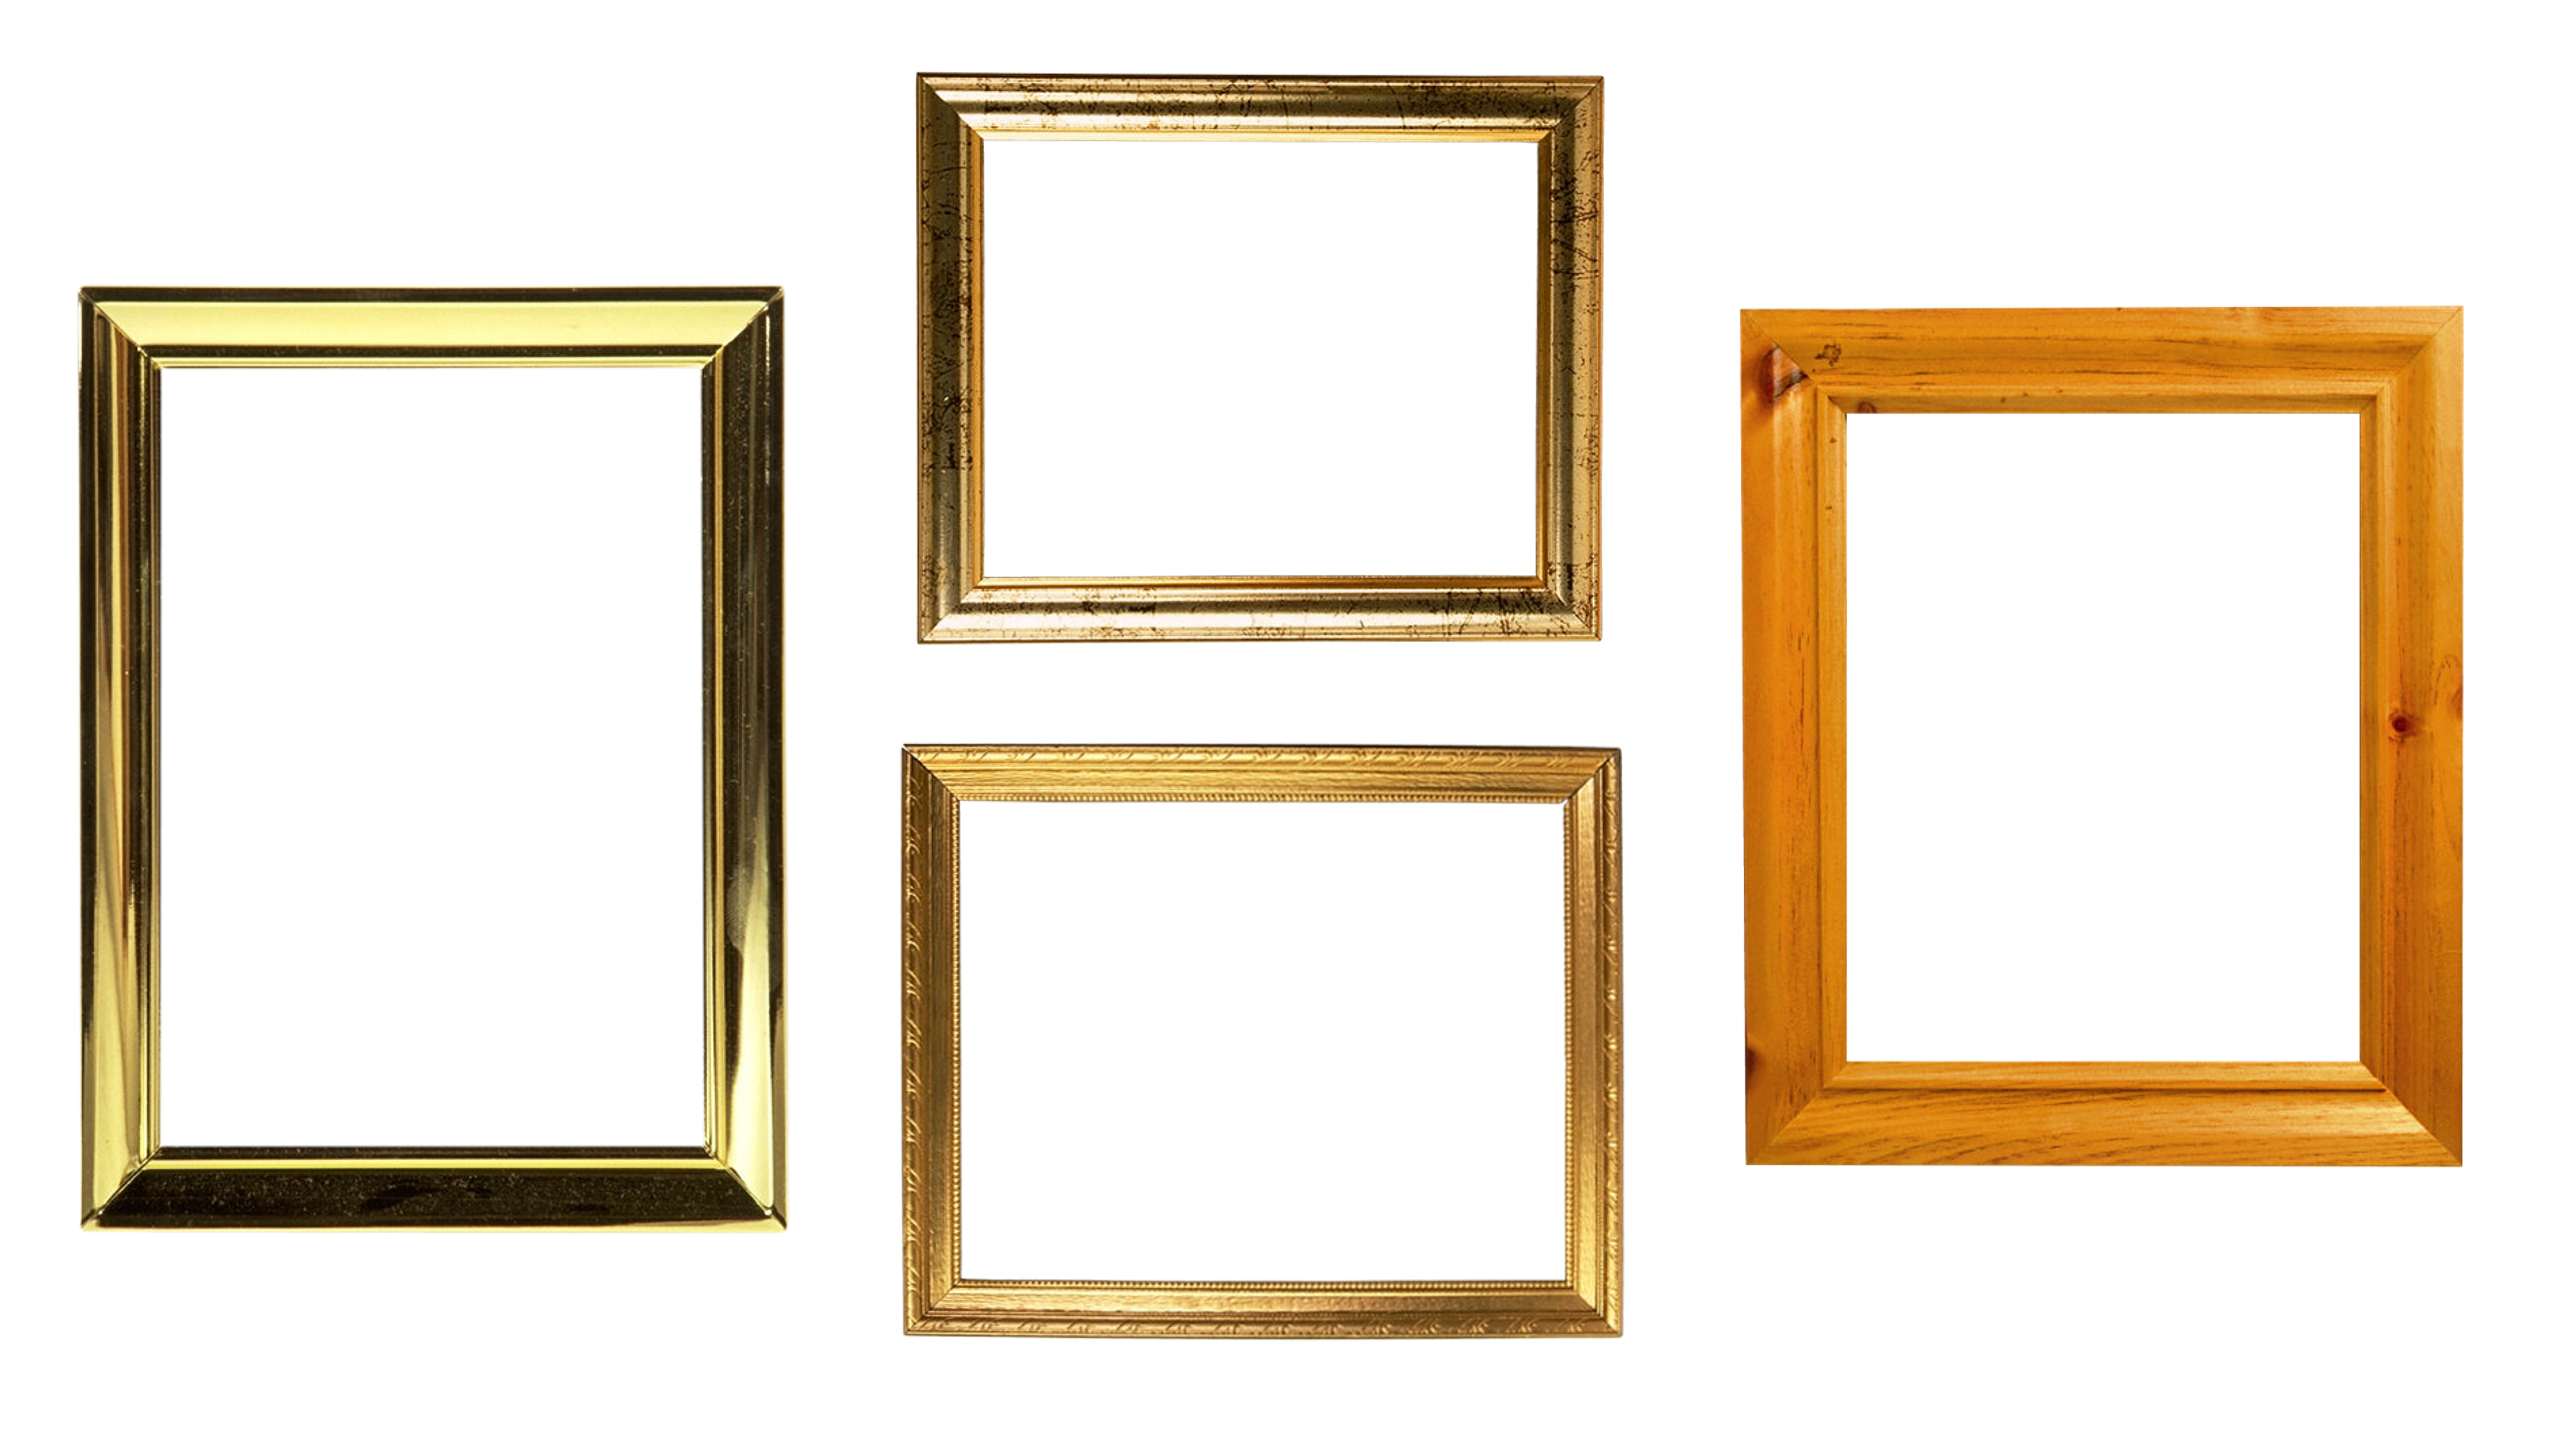 modern frames for wall art at home